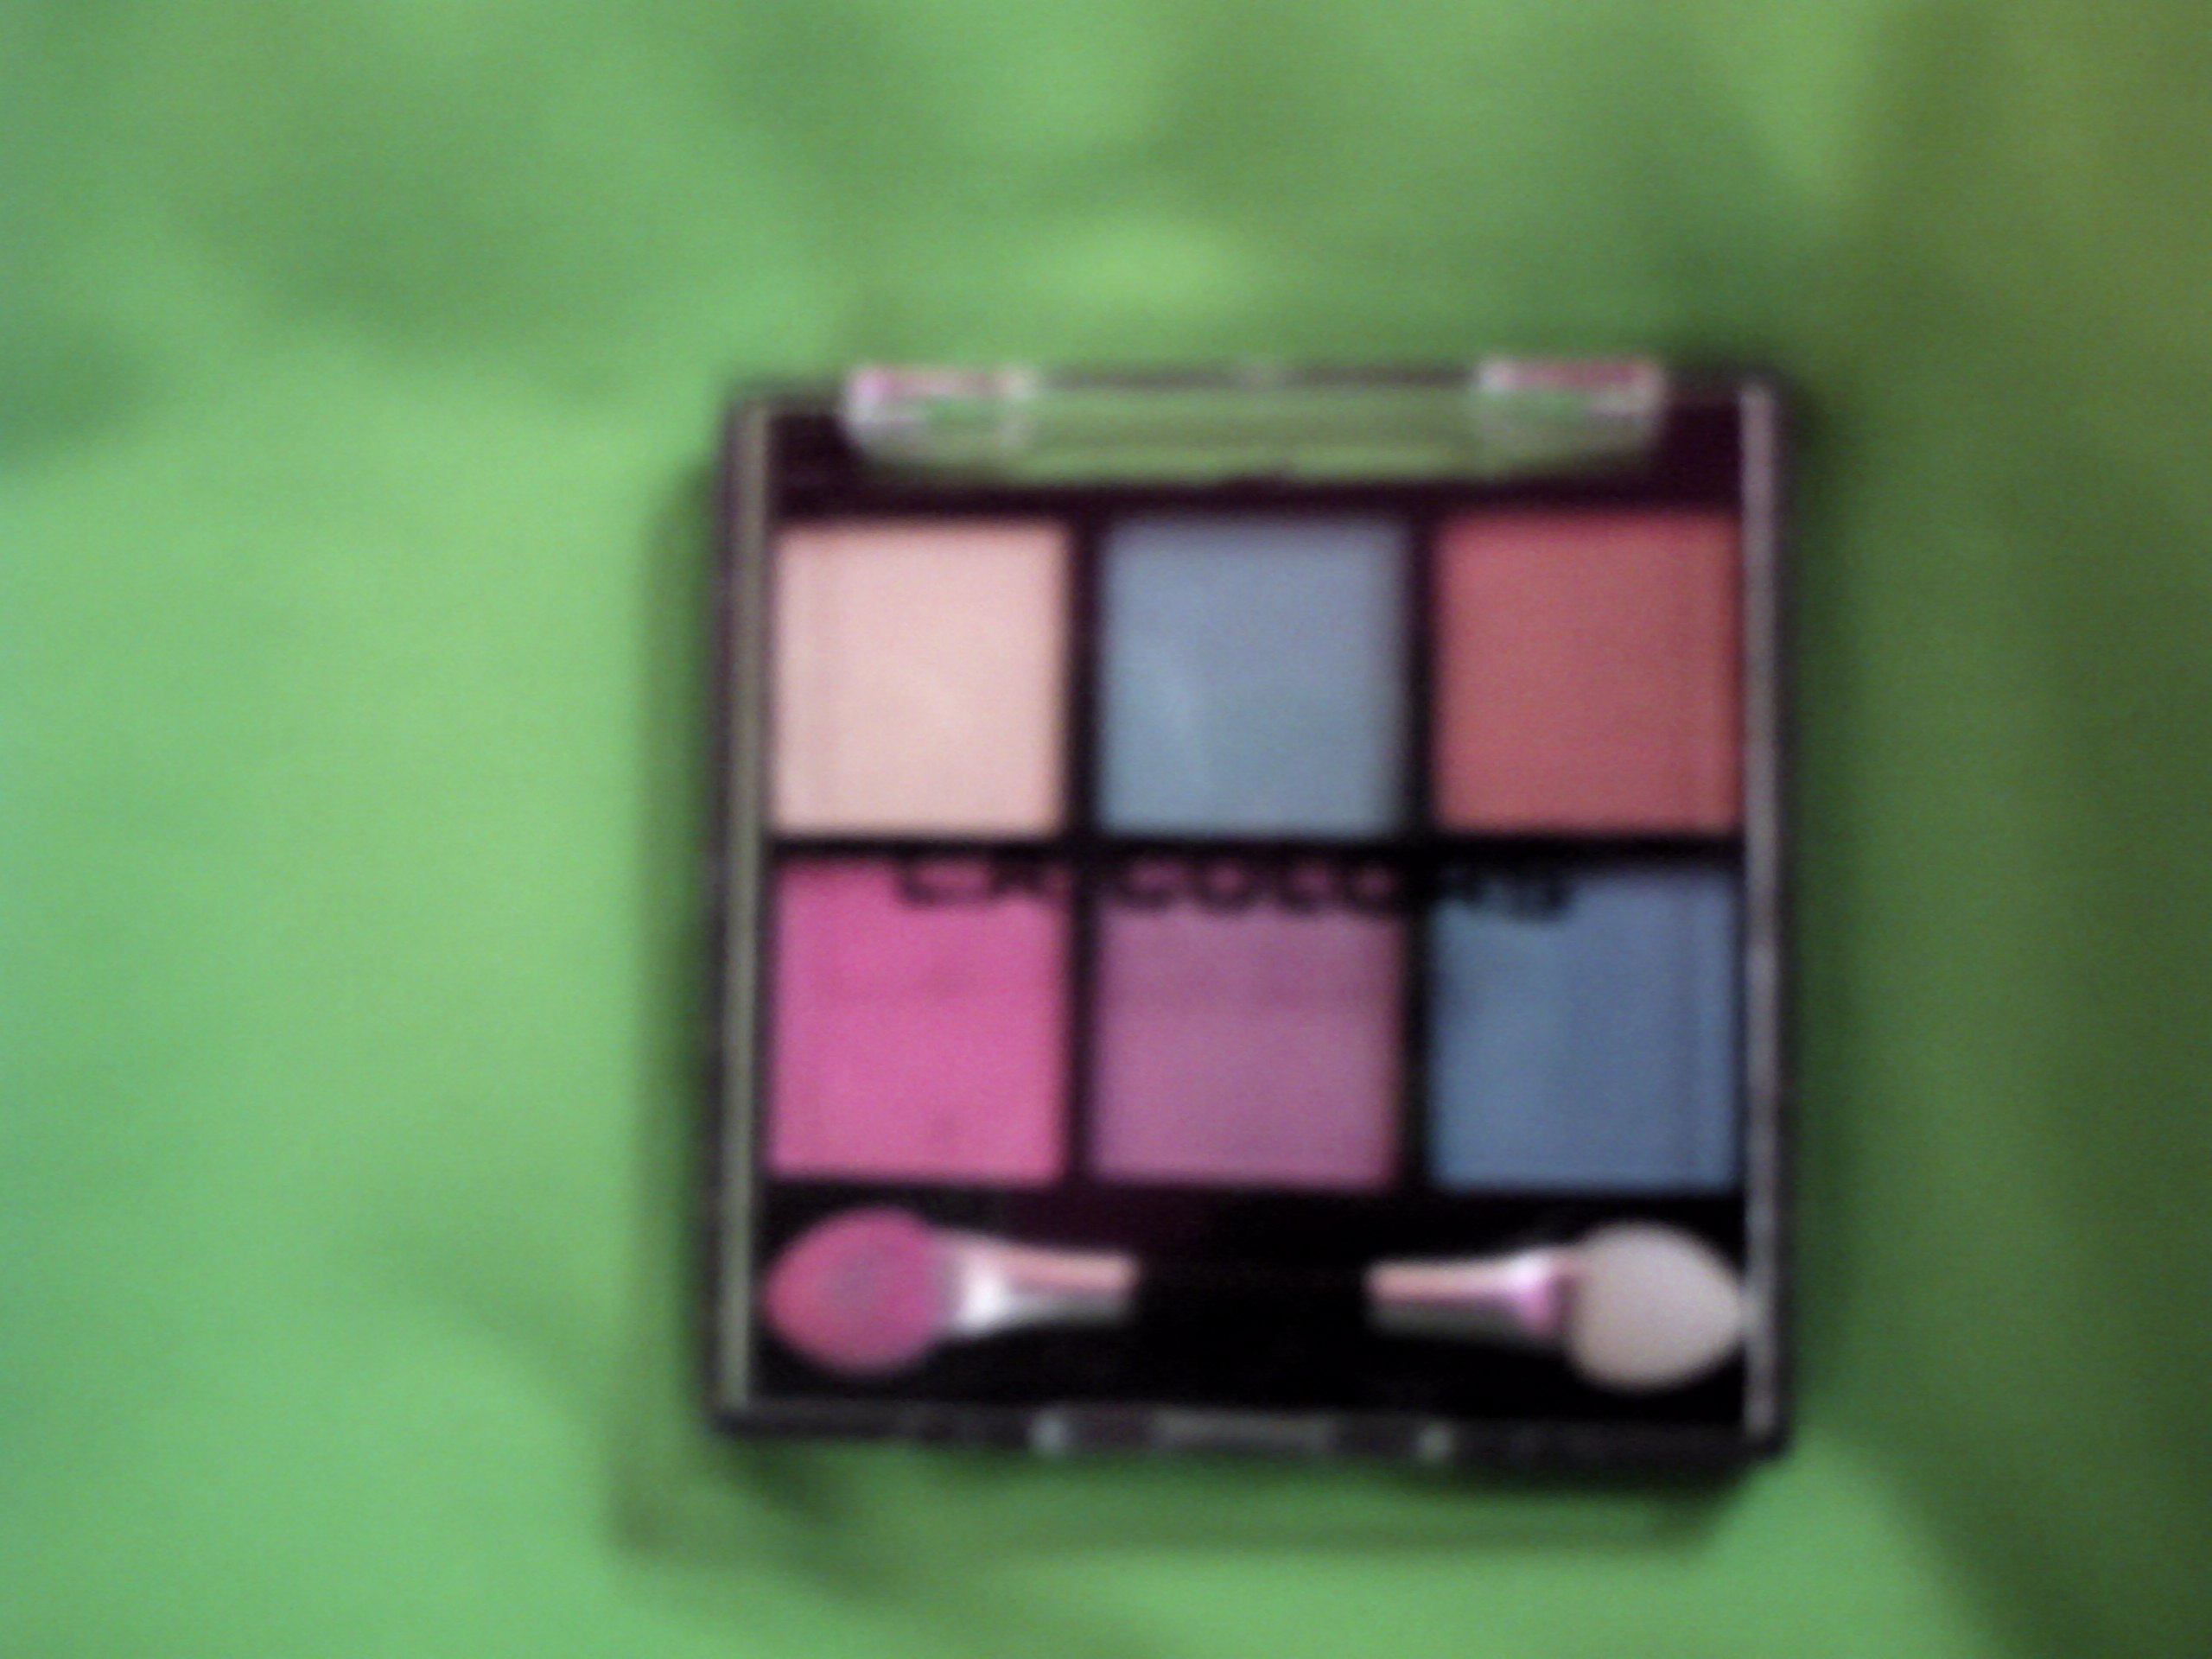 L. A. Colors 6 Color Metallic Eyeshadow in Eye Candy